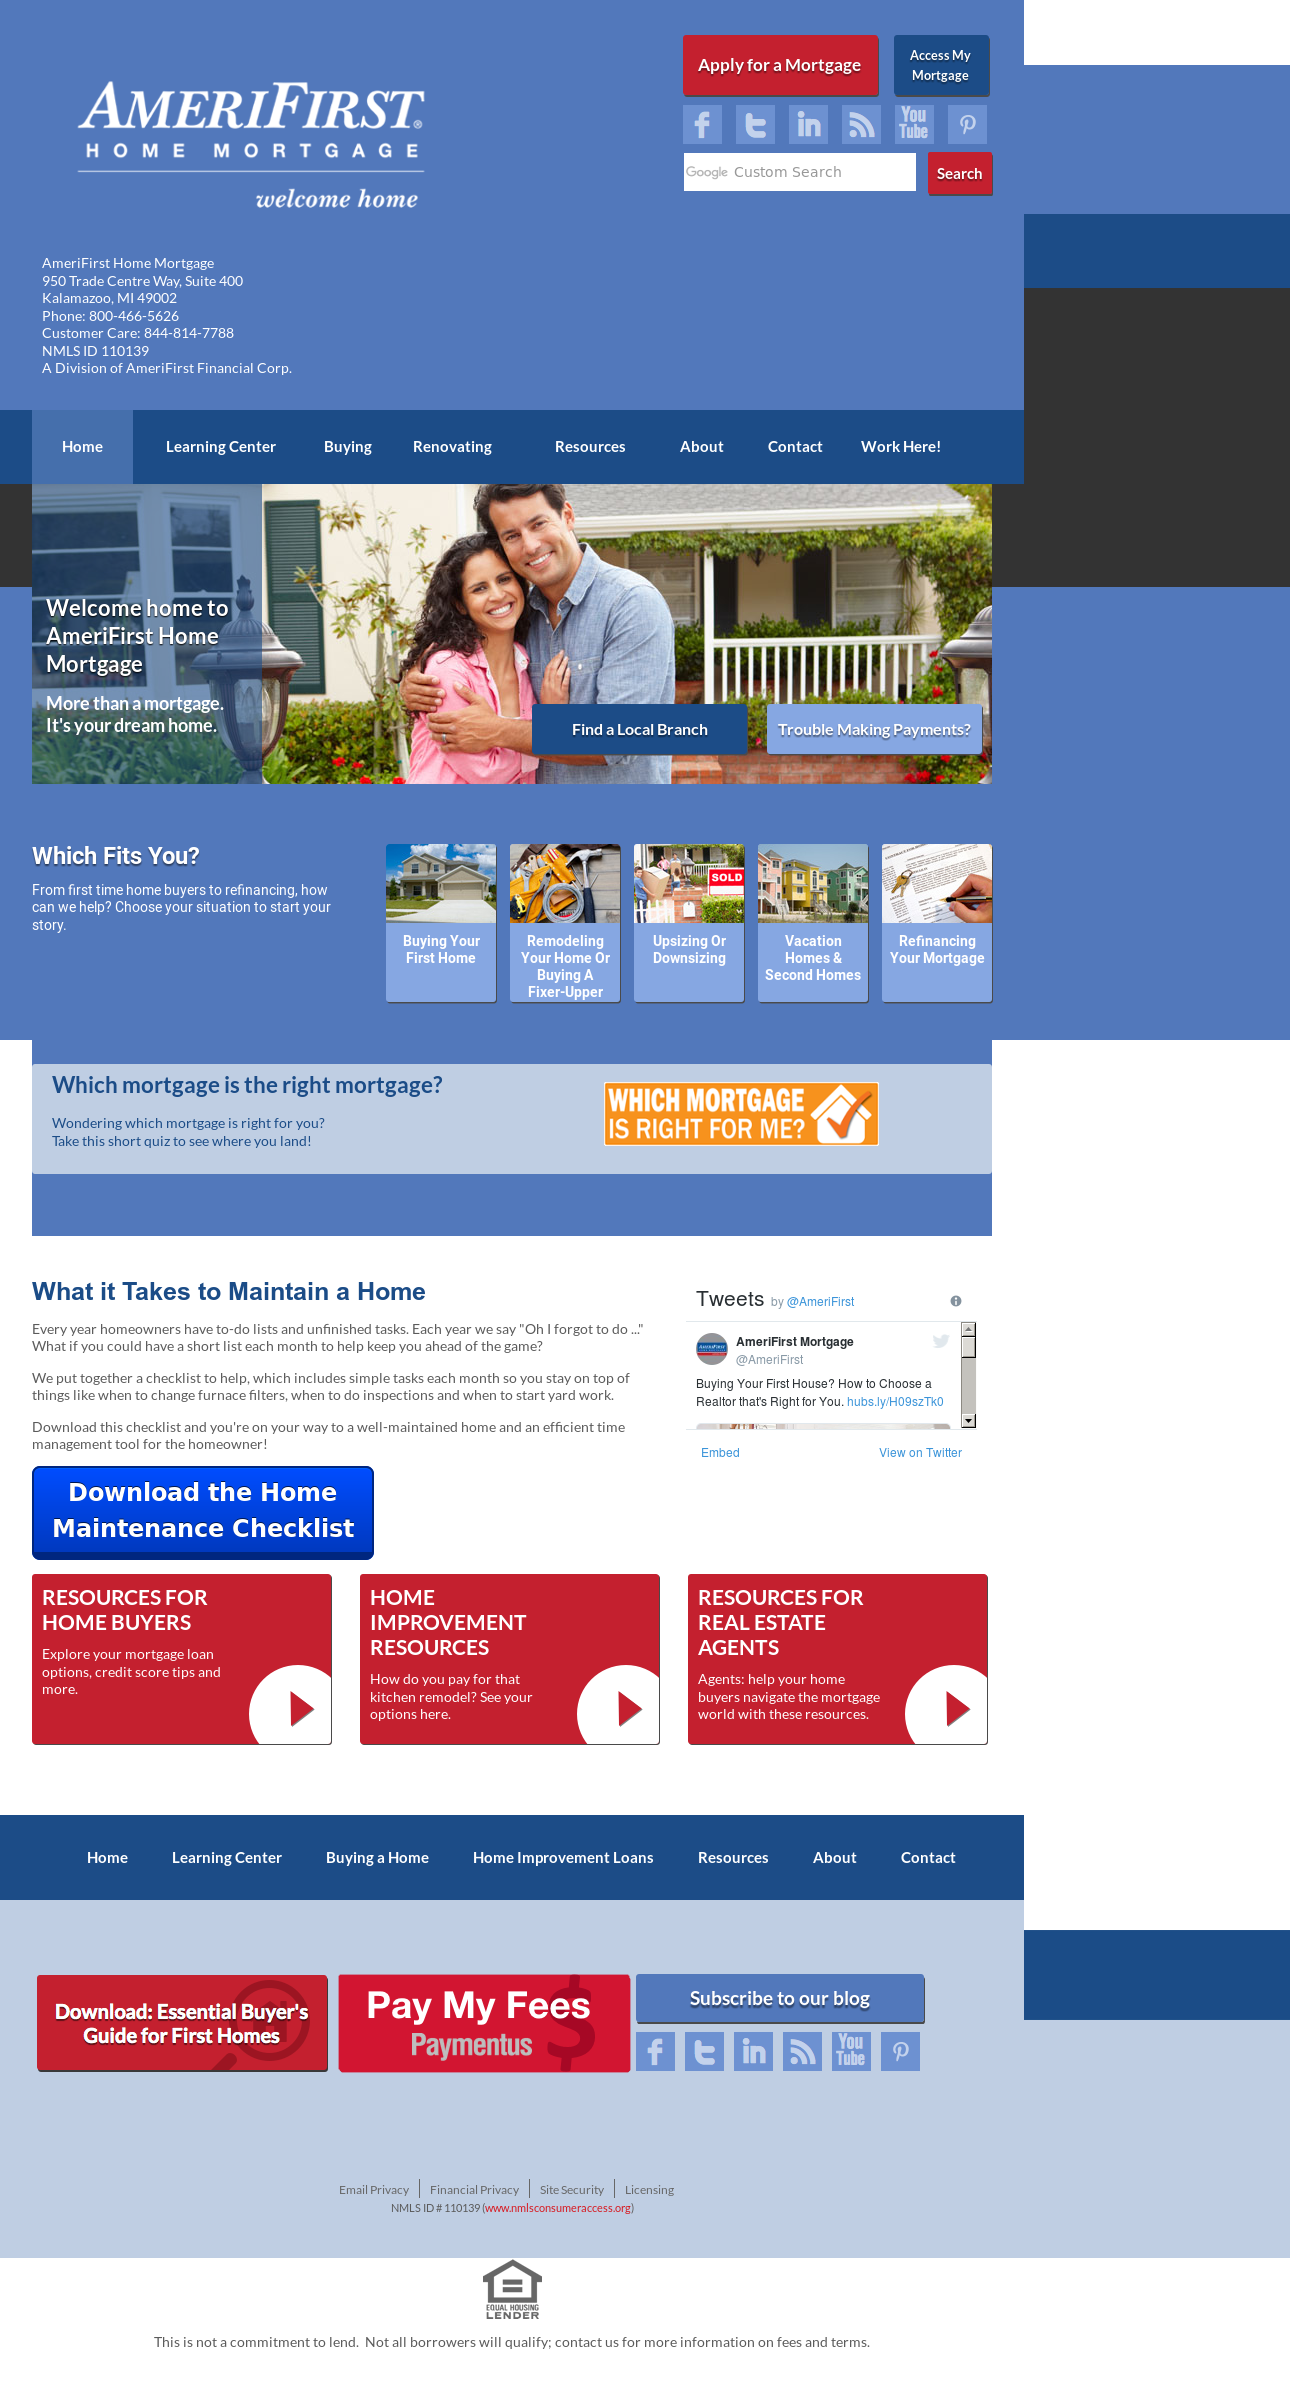 Amerifirst Home Mortgage S Competitors Revenue Number Of Employees Funding Acquisitions News Owler Company Profile